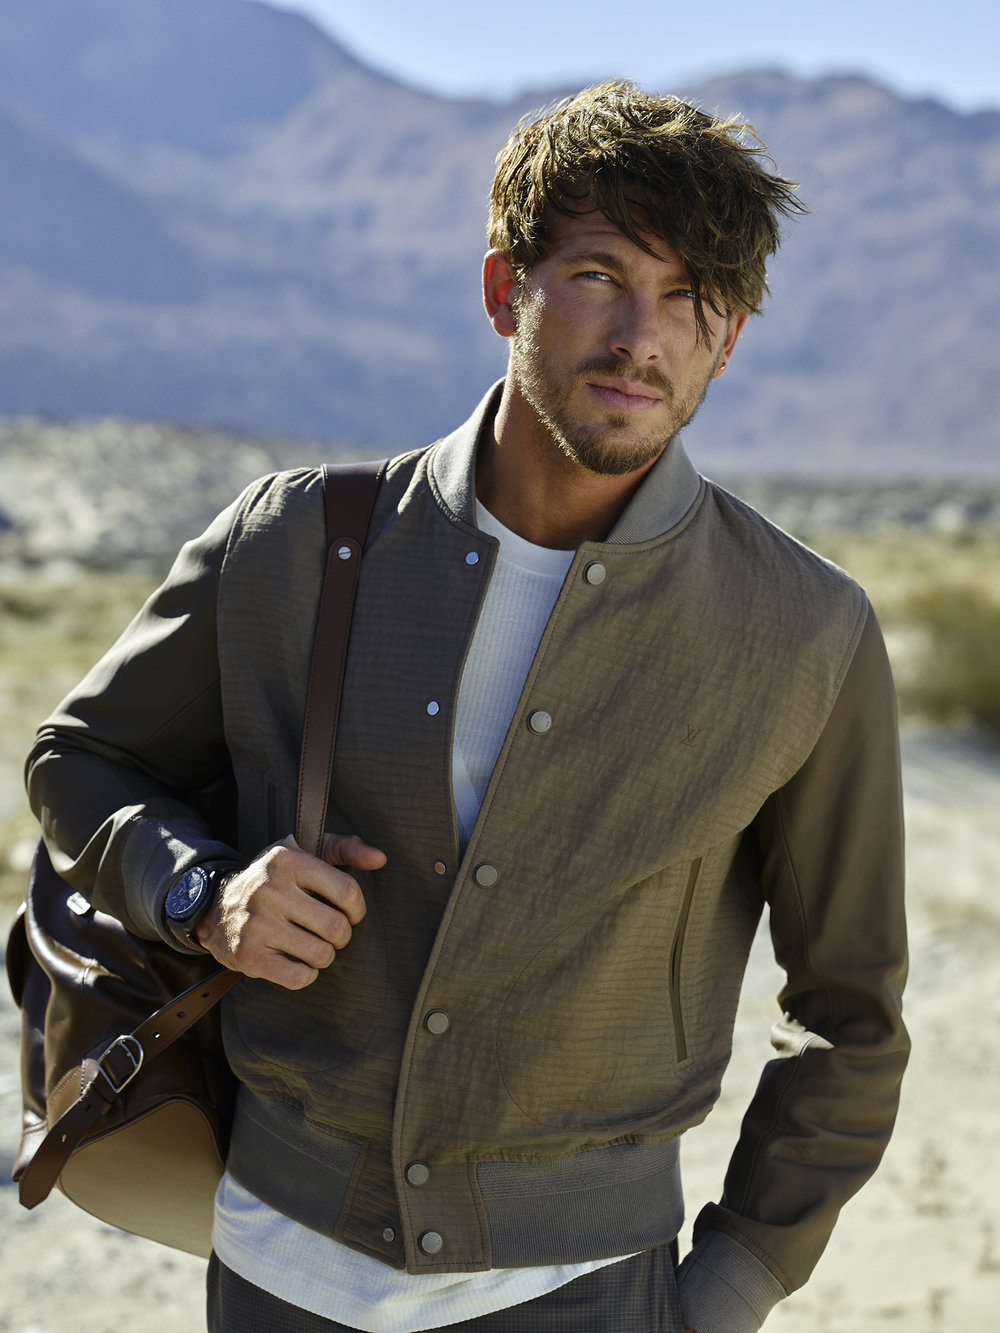 ADAM SENN, GQ, photo John Tsiavis 4